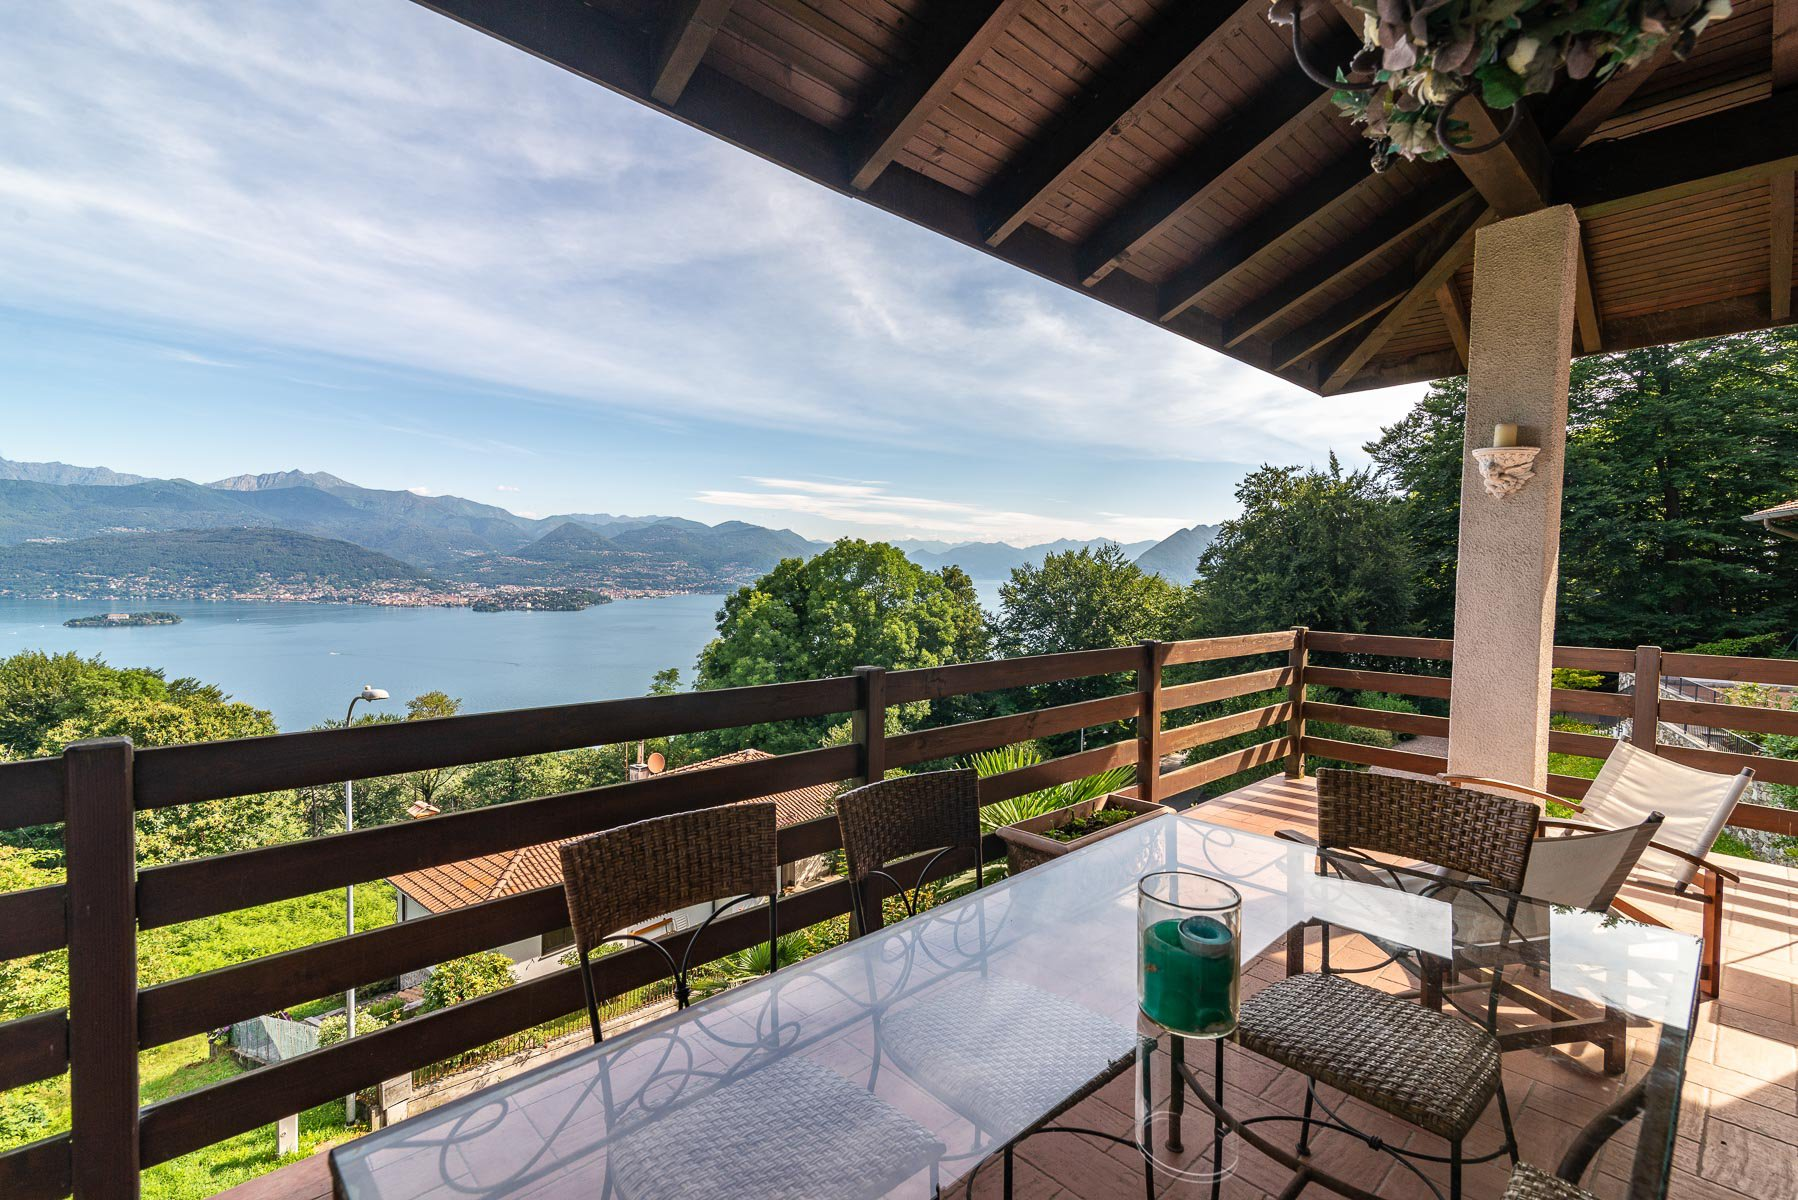 Lake view villa for sale on the hill of Stresa - lake view terrace